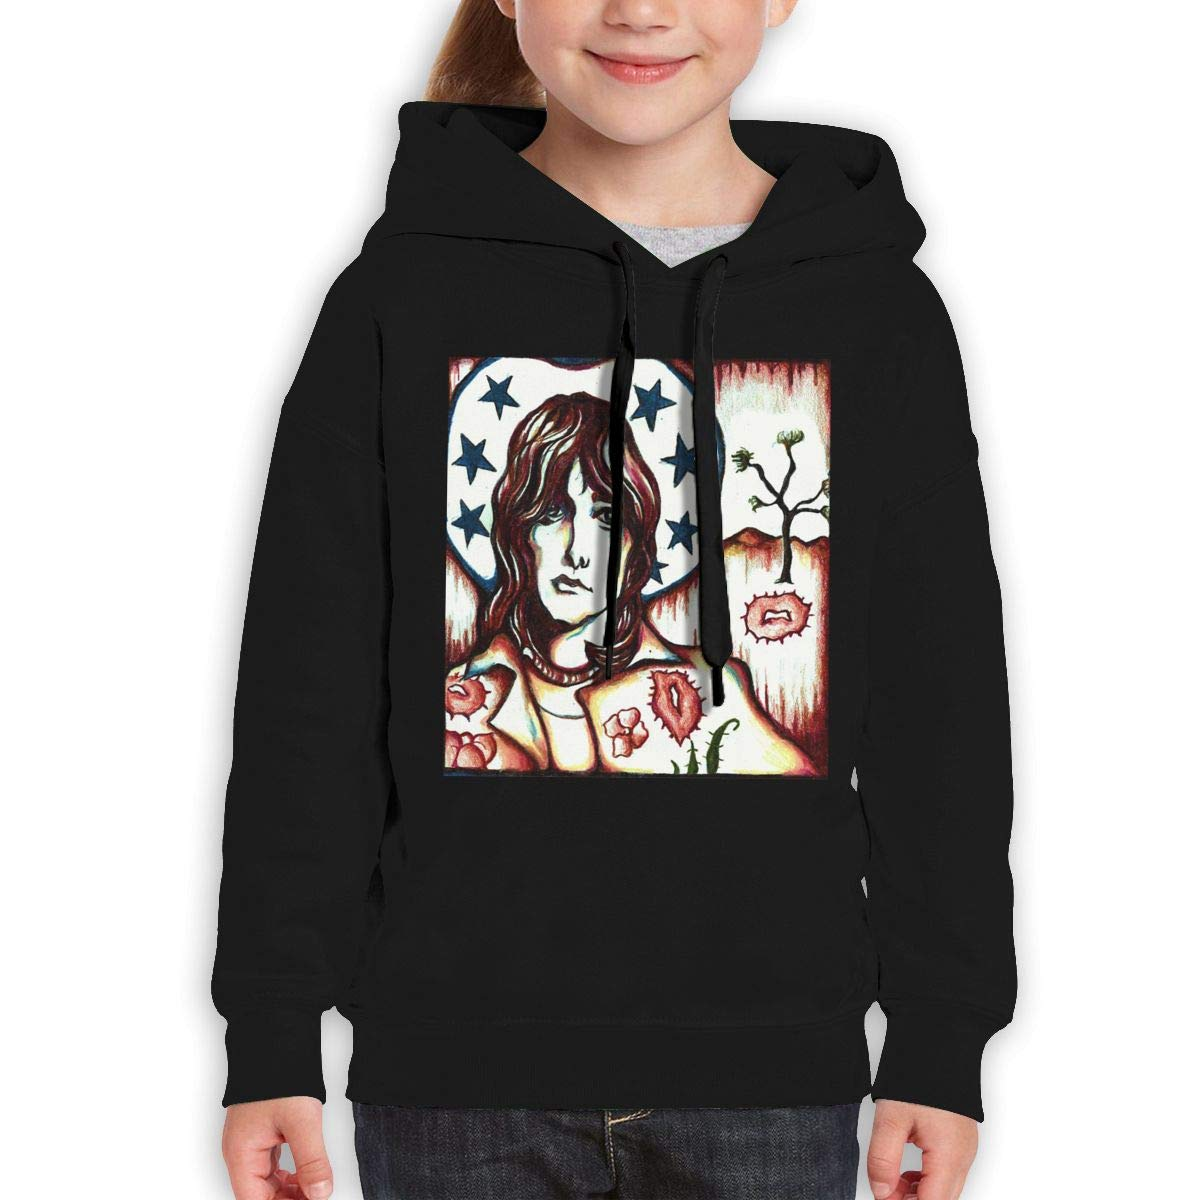 Guiping Gram Parsons Joshua Tree Teen Hooded Sweate Sweatshirt Black